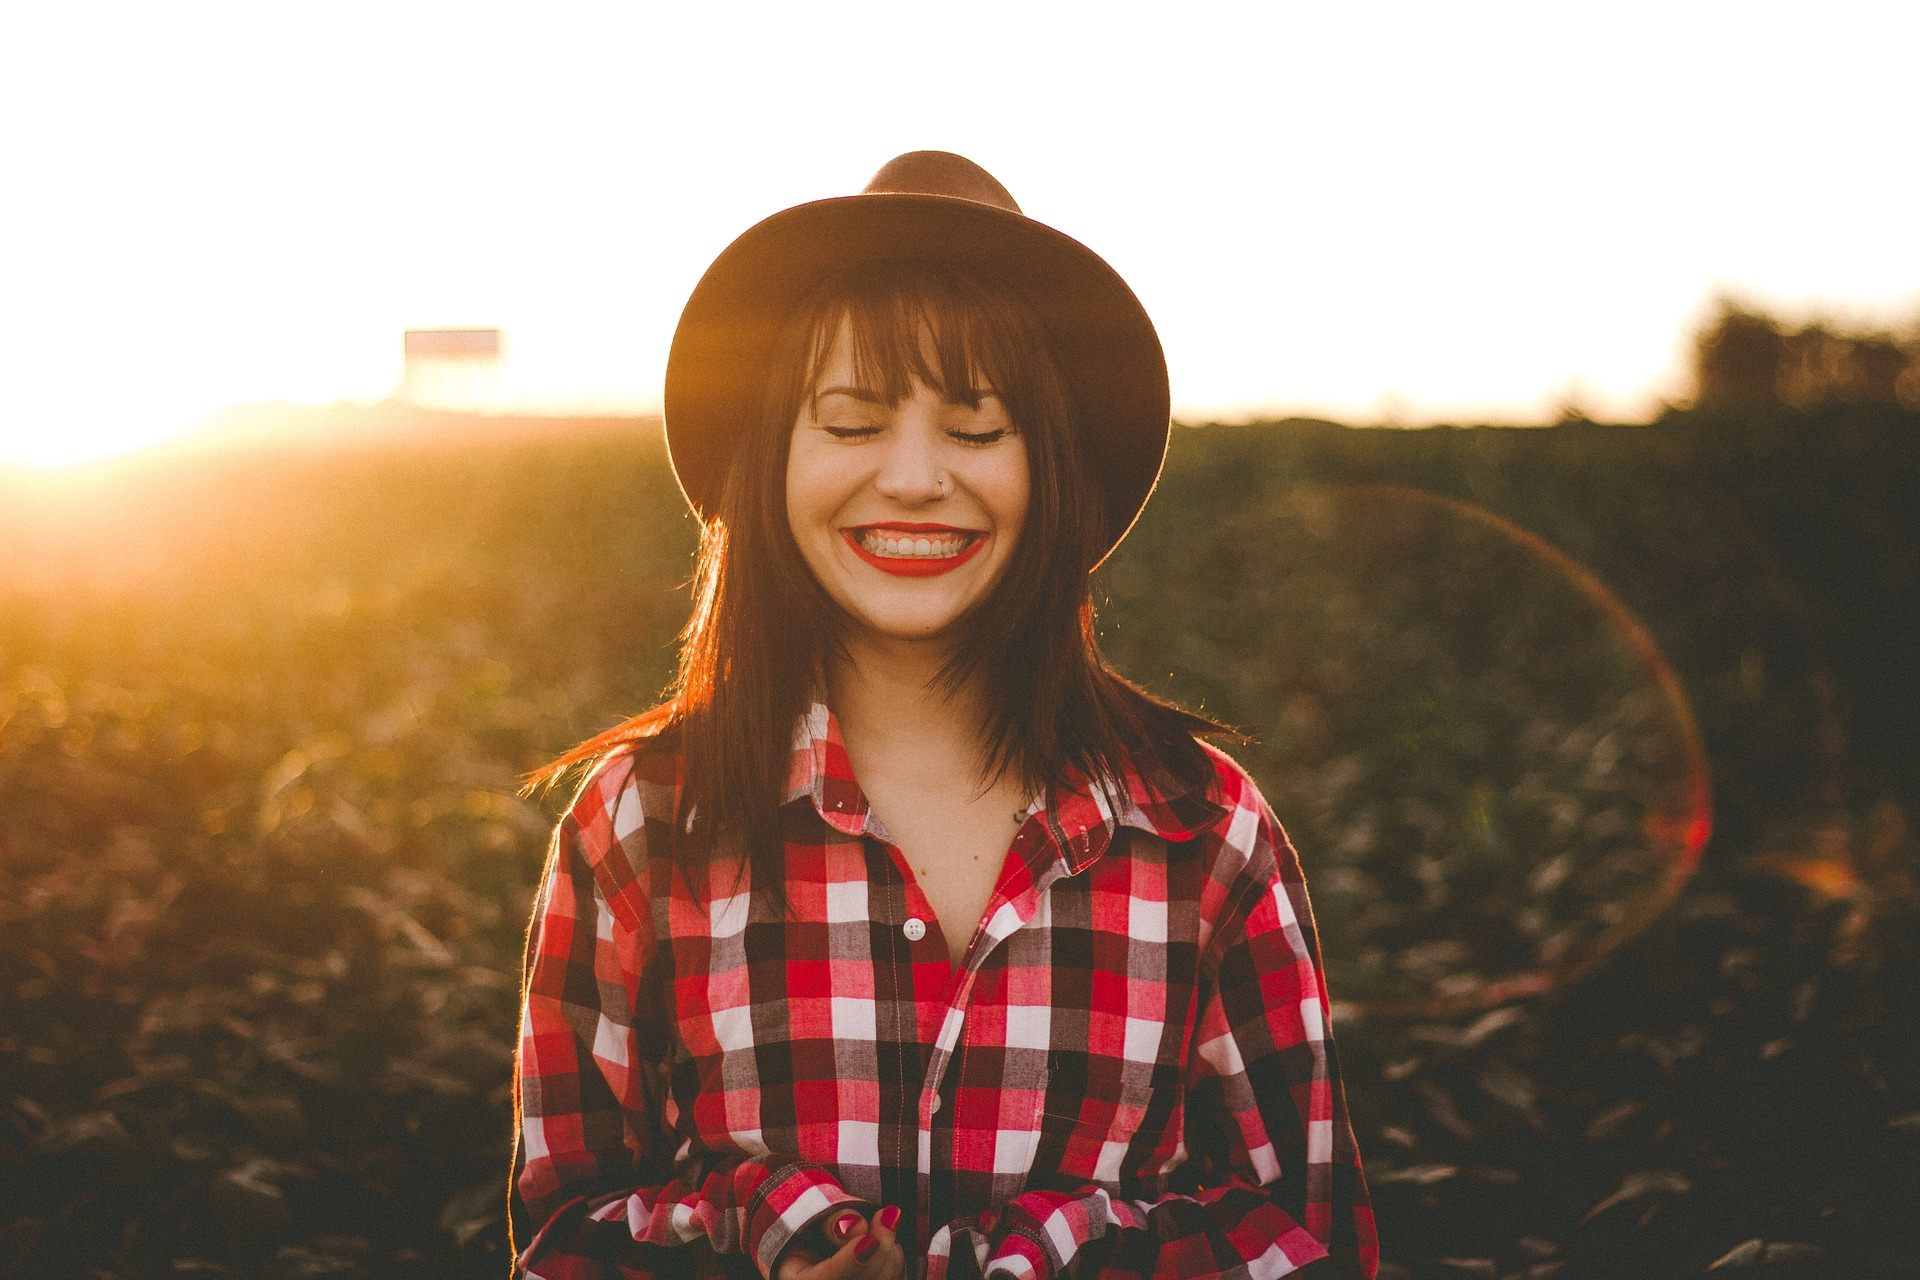 Smile! Does Daylight Saving Time make you happier?